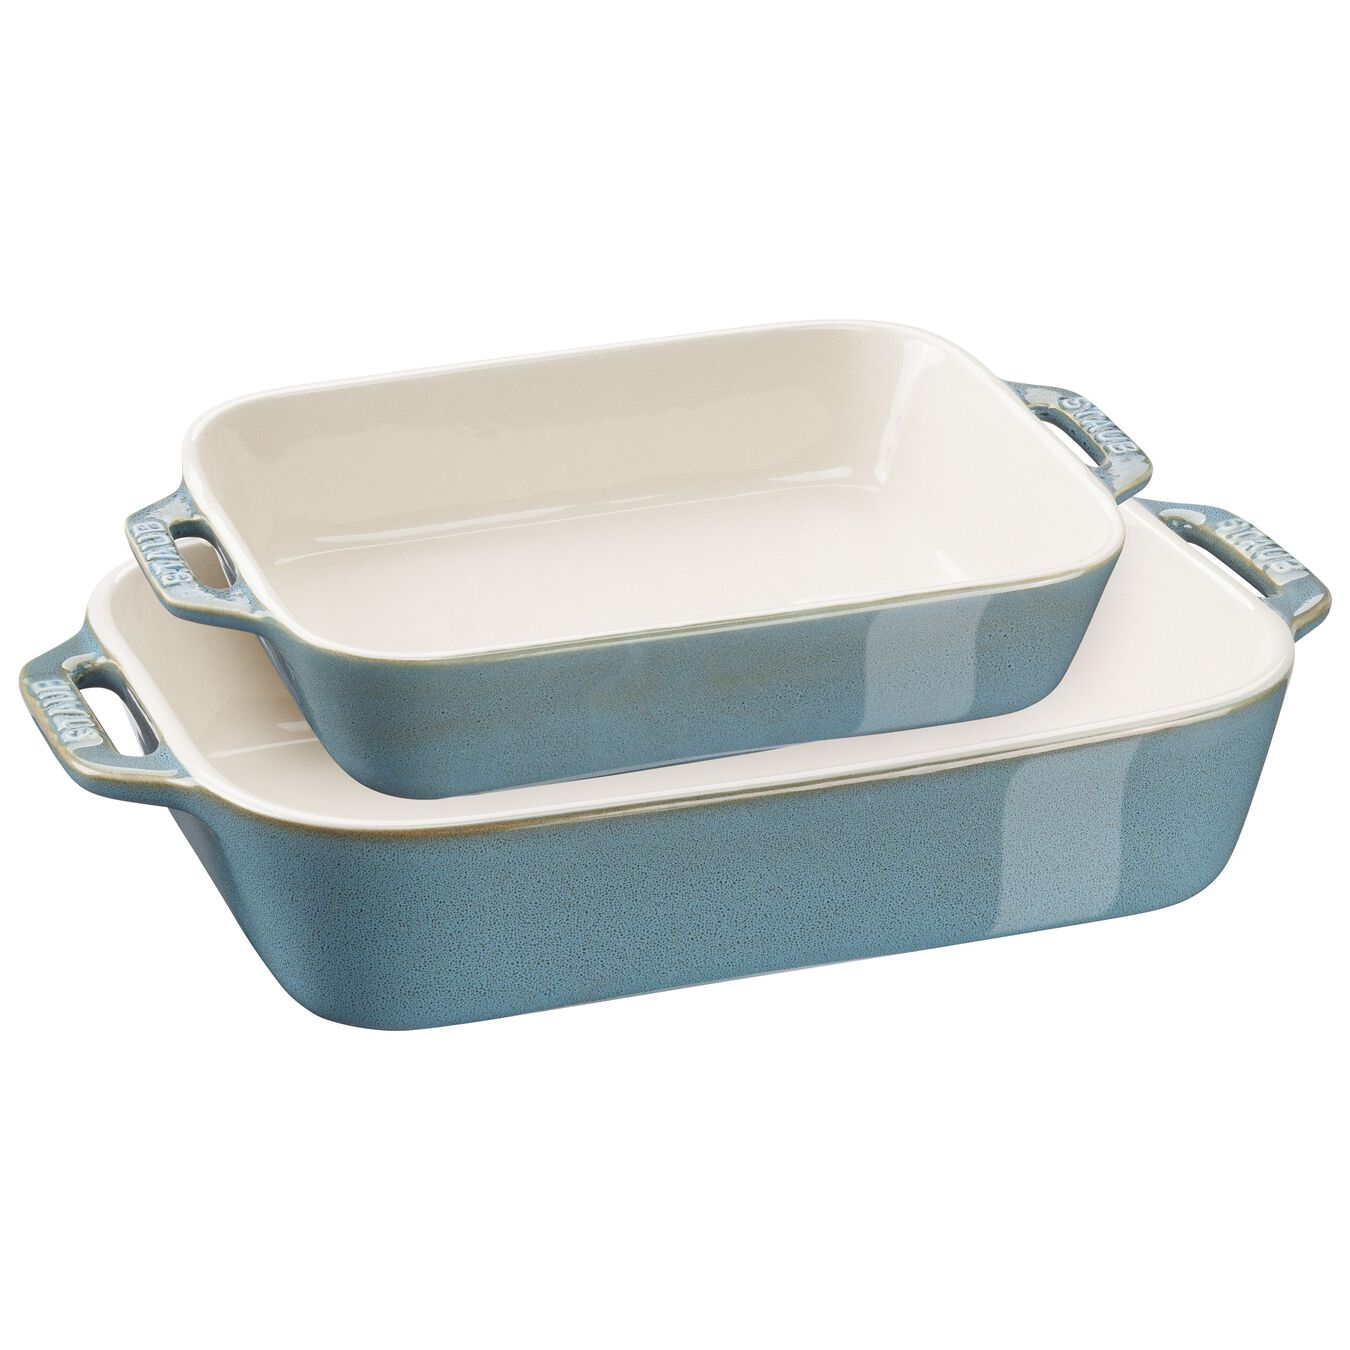 2-pc, Rectangular Baking Dish Set, rustic turquoise,,large 1